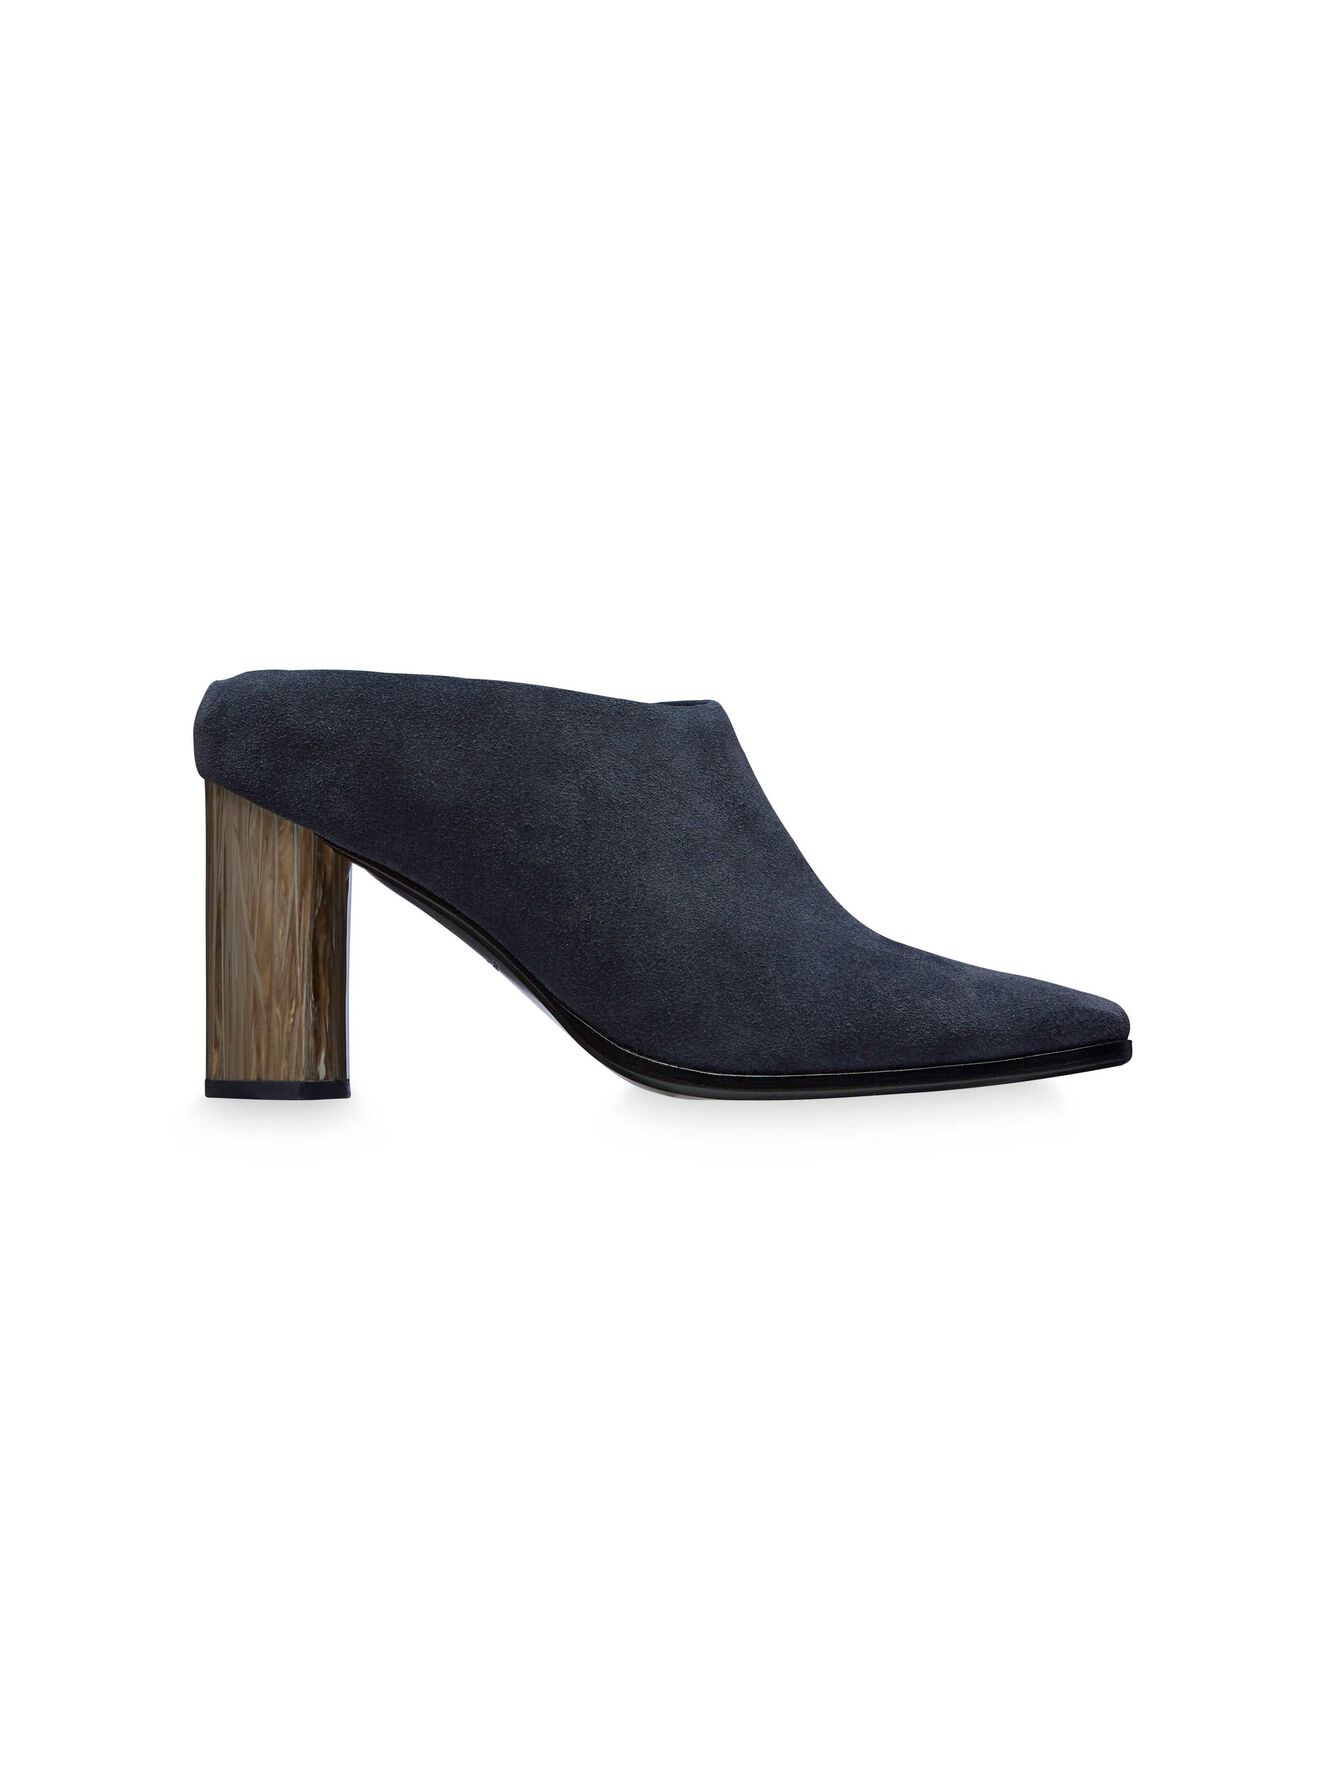 Colyton S Mule in Deep blue from Tiger of Sweden